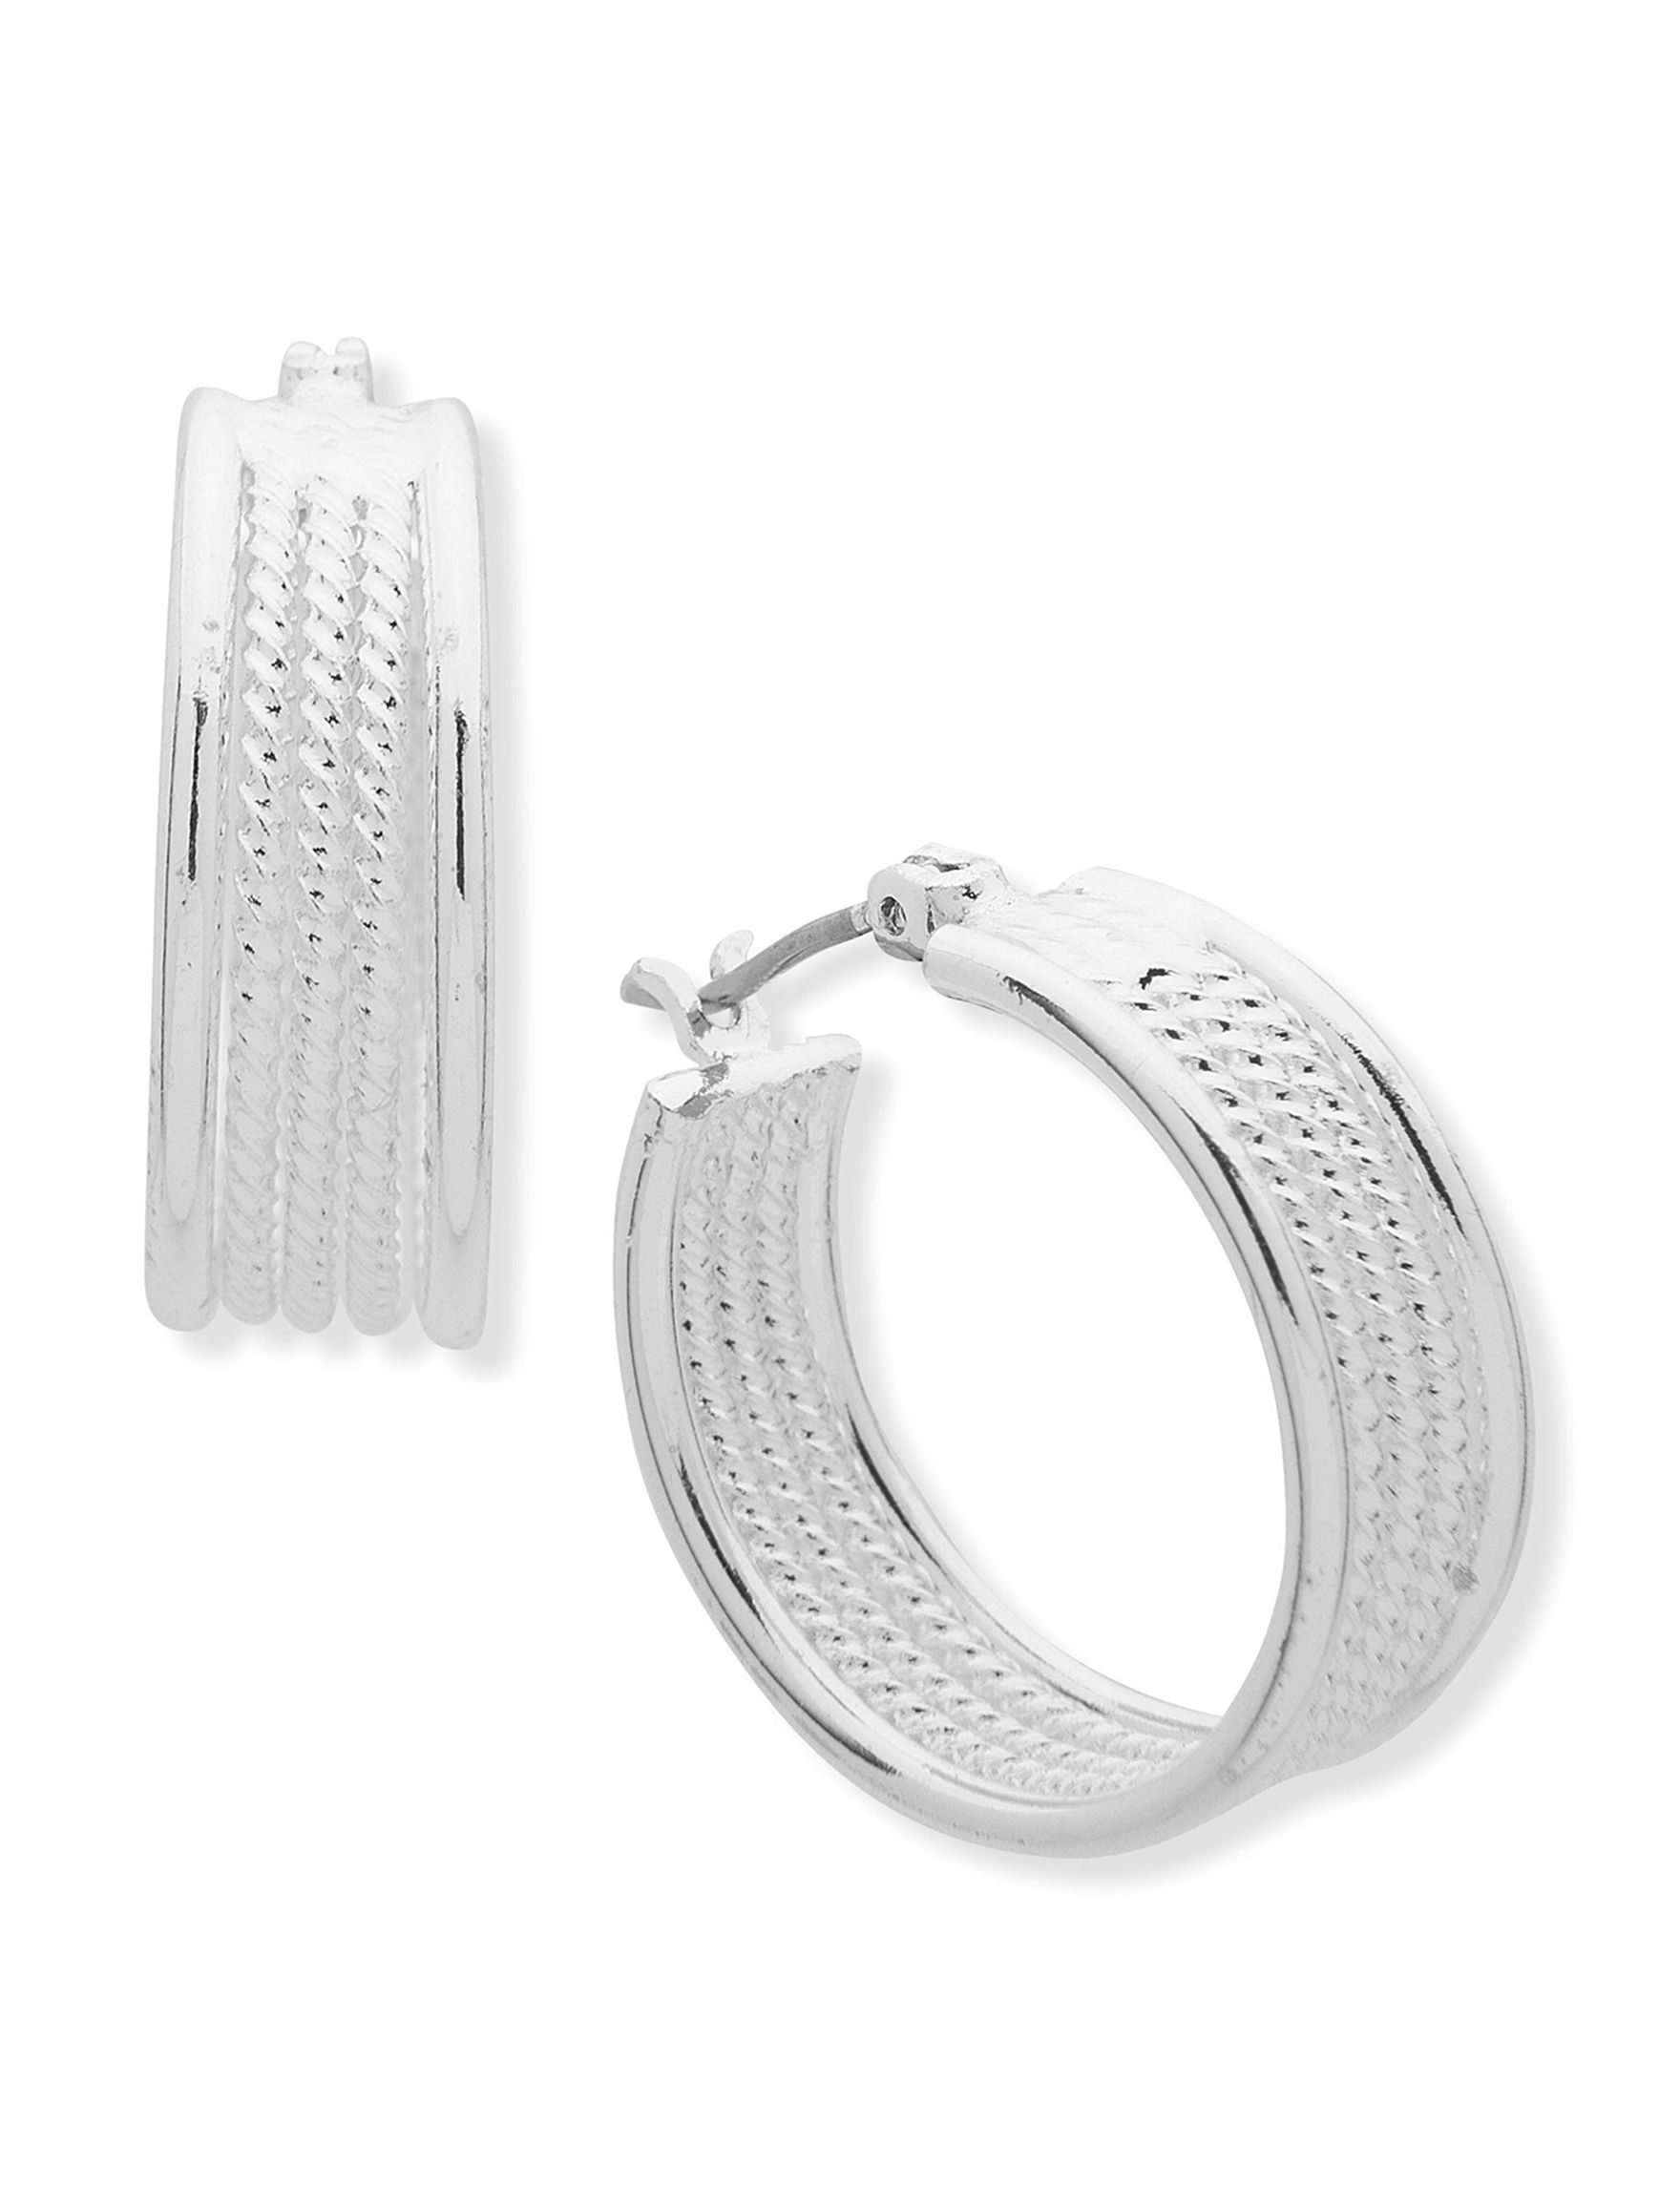 Chaps Silver Hoops Earrings Fashion Jewelry